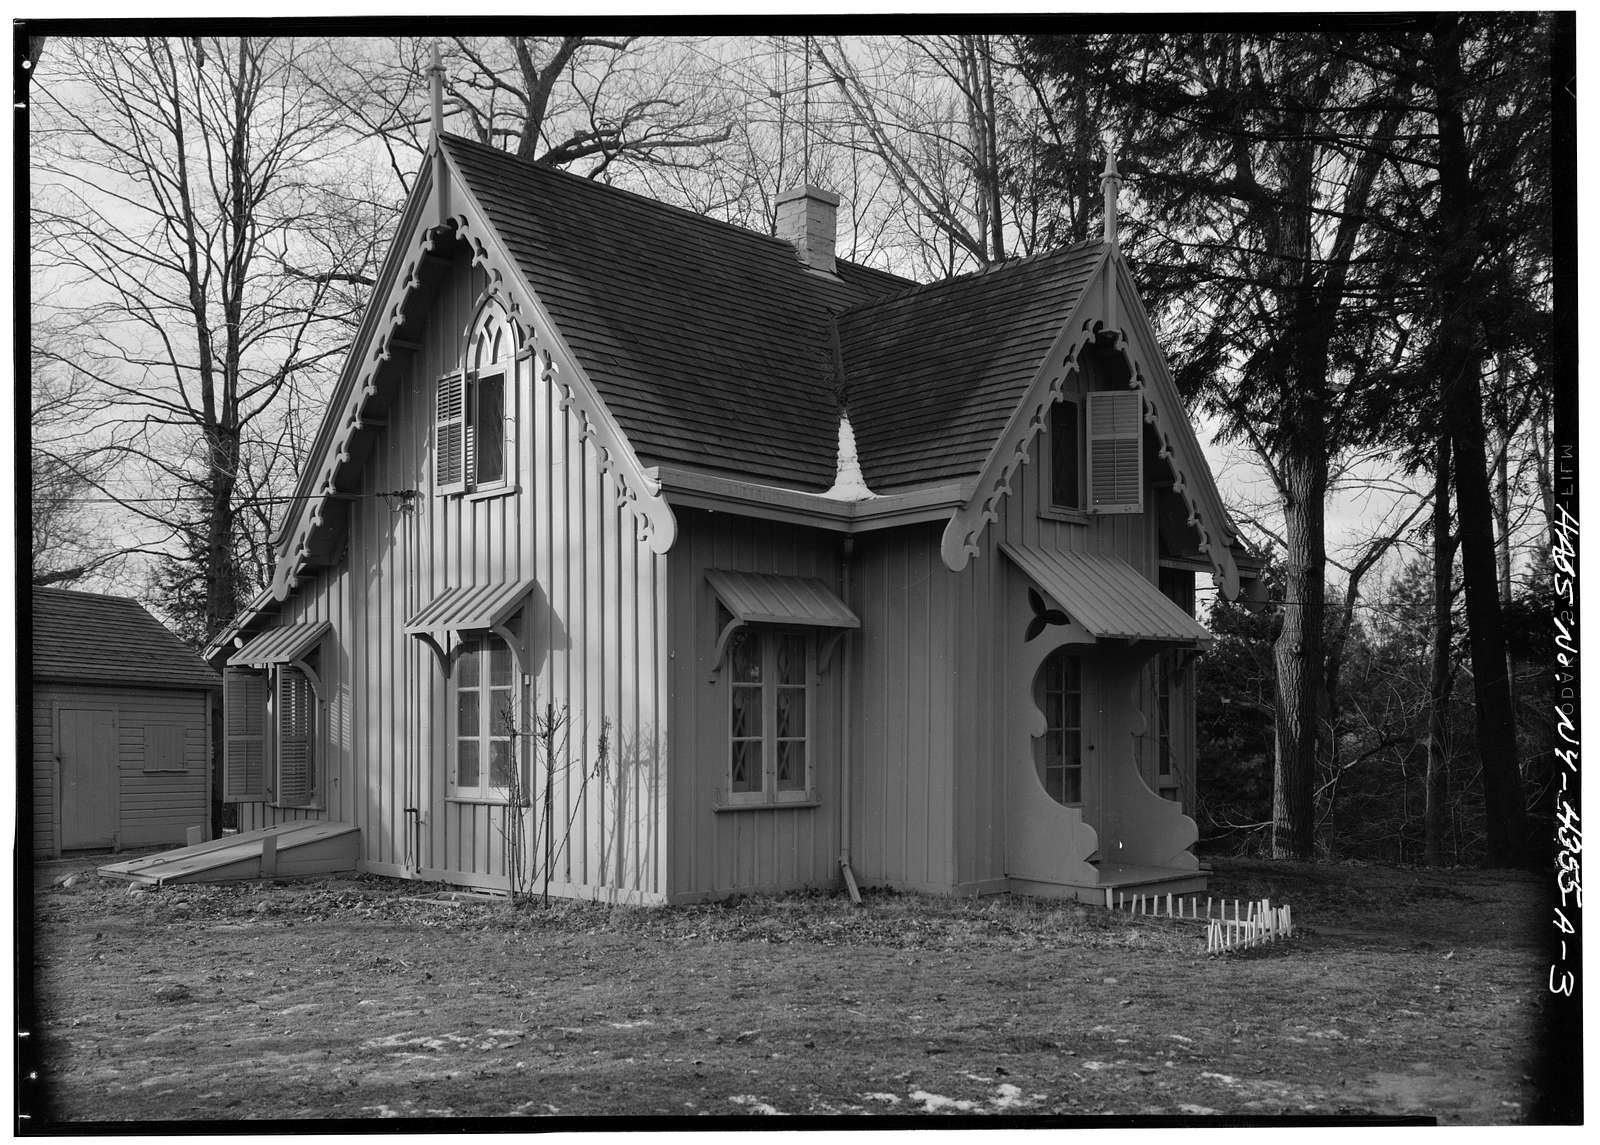 Springwood, Superintendent's Cottage, Hyde Park, Dutchess County, NY